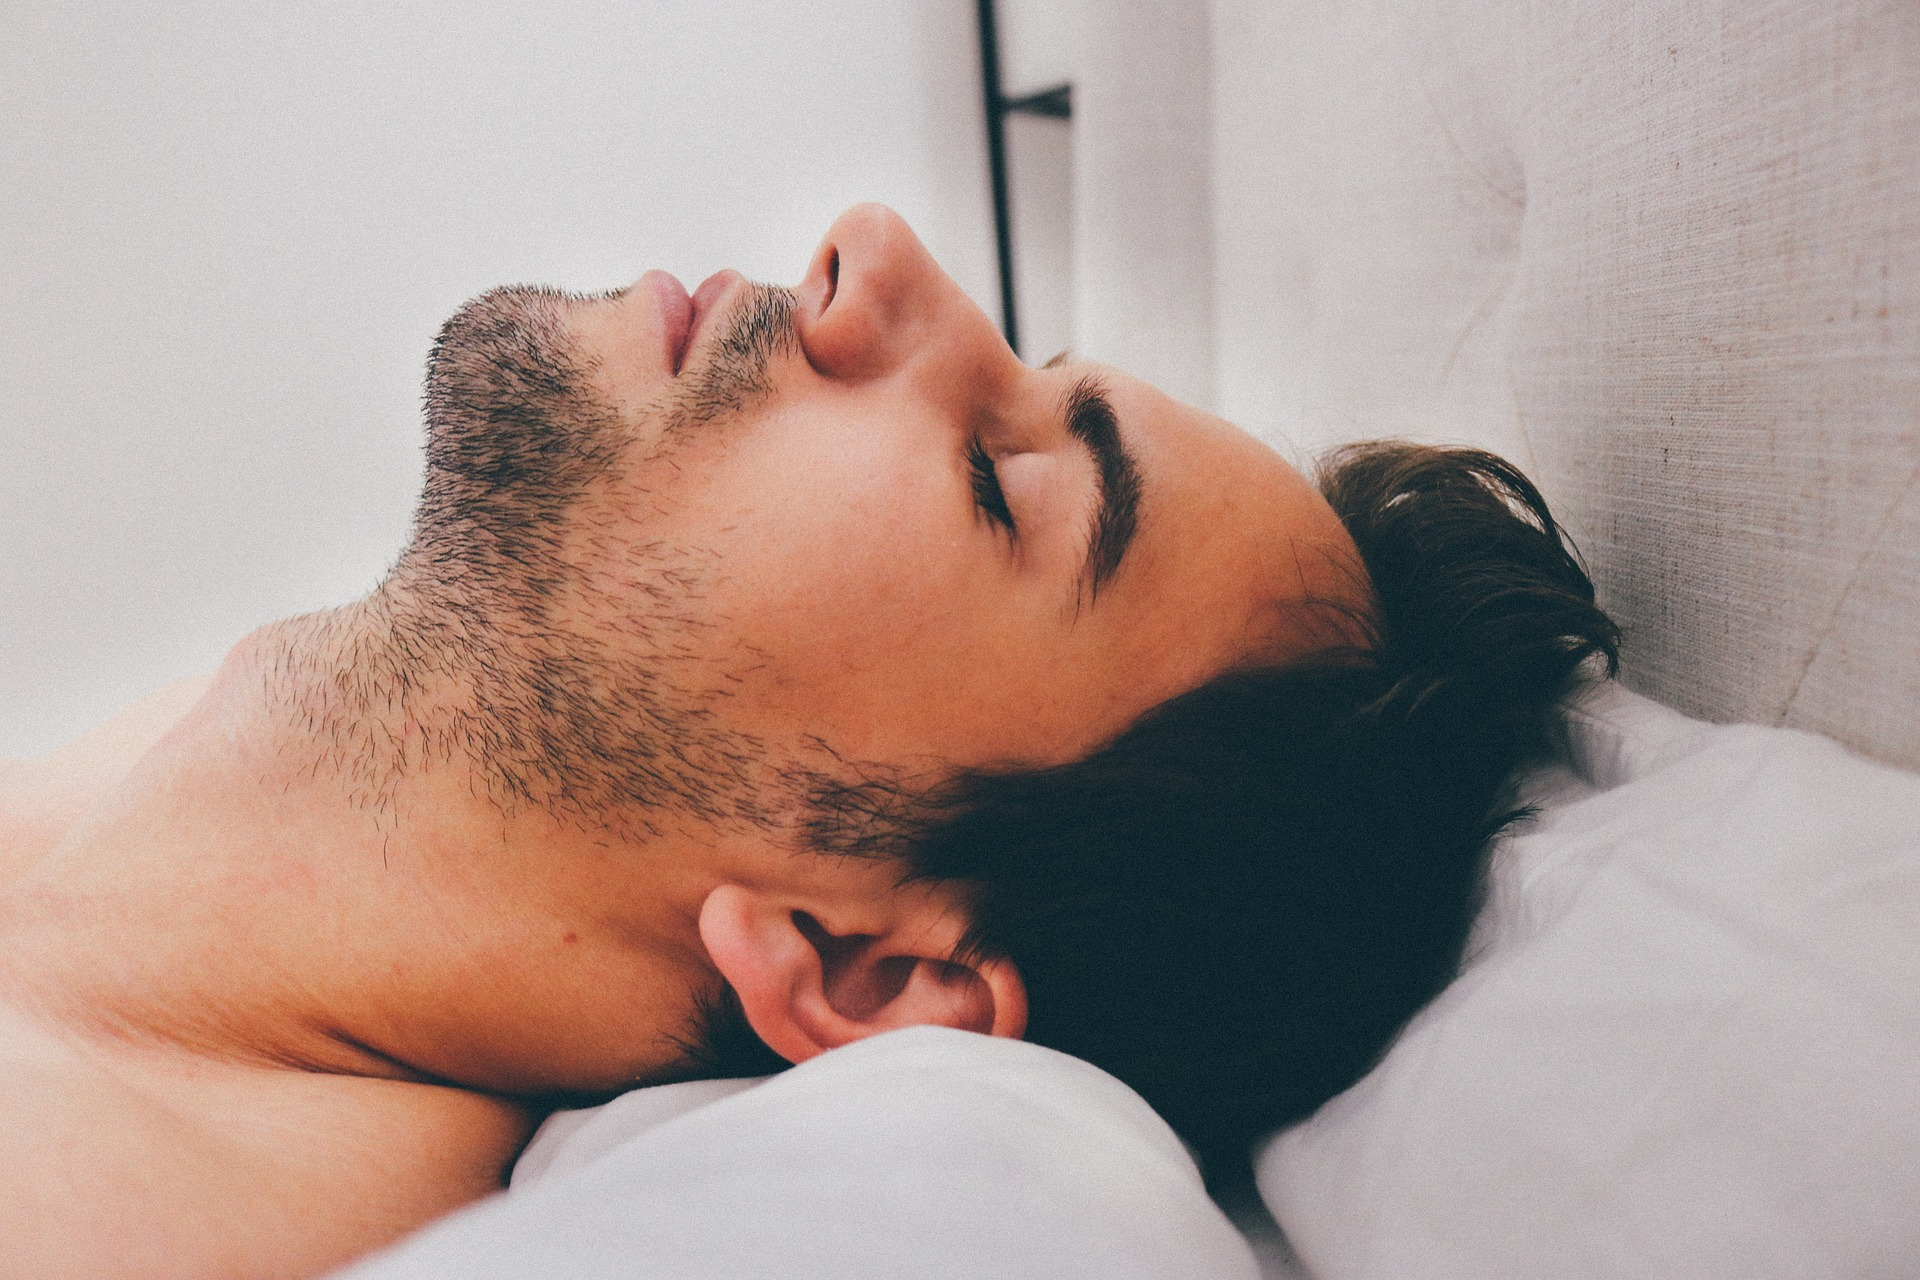 Can sleep affect your weight?